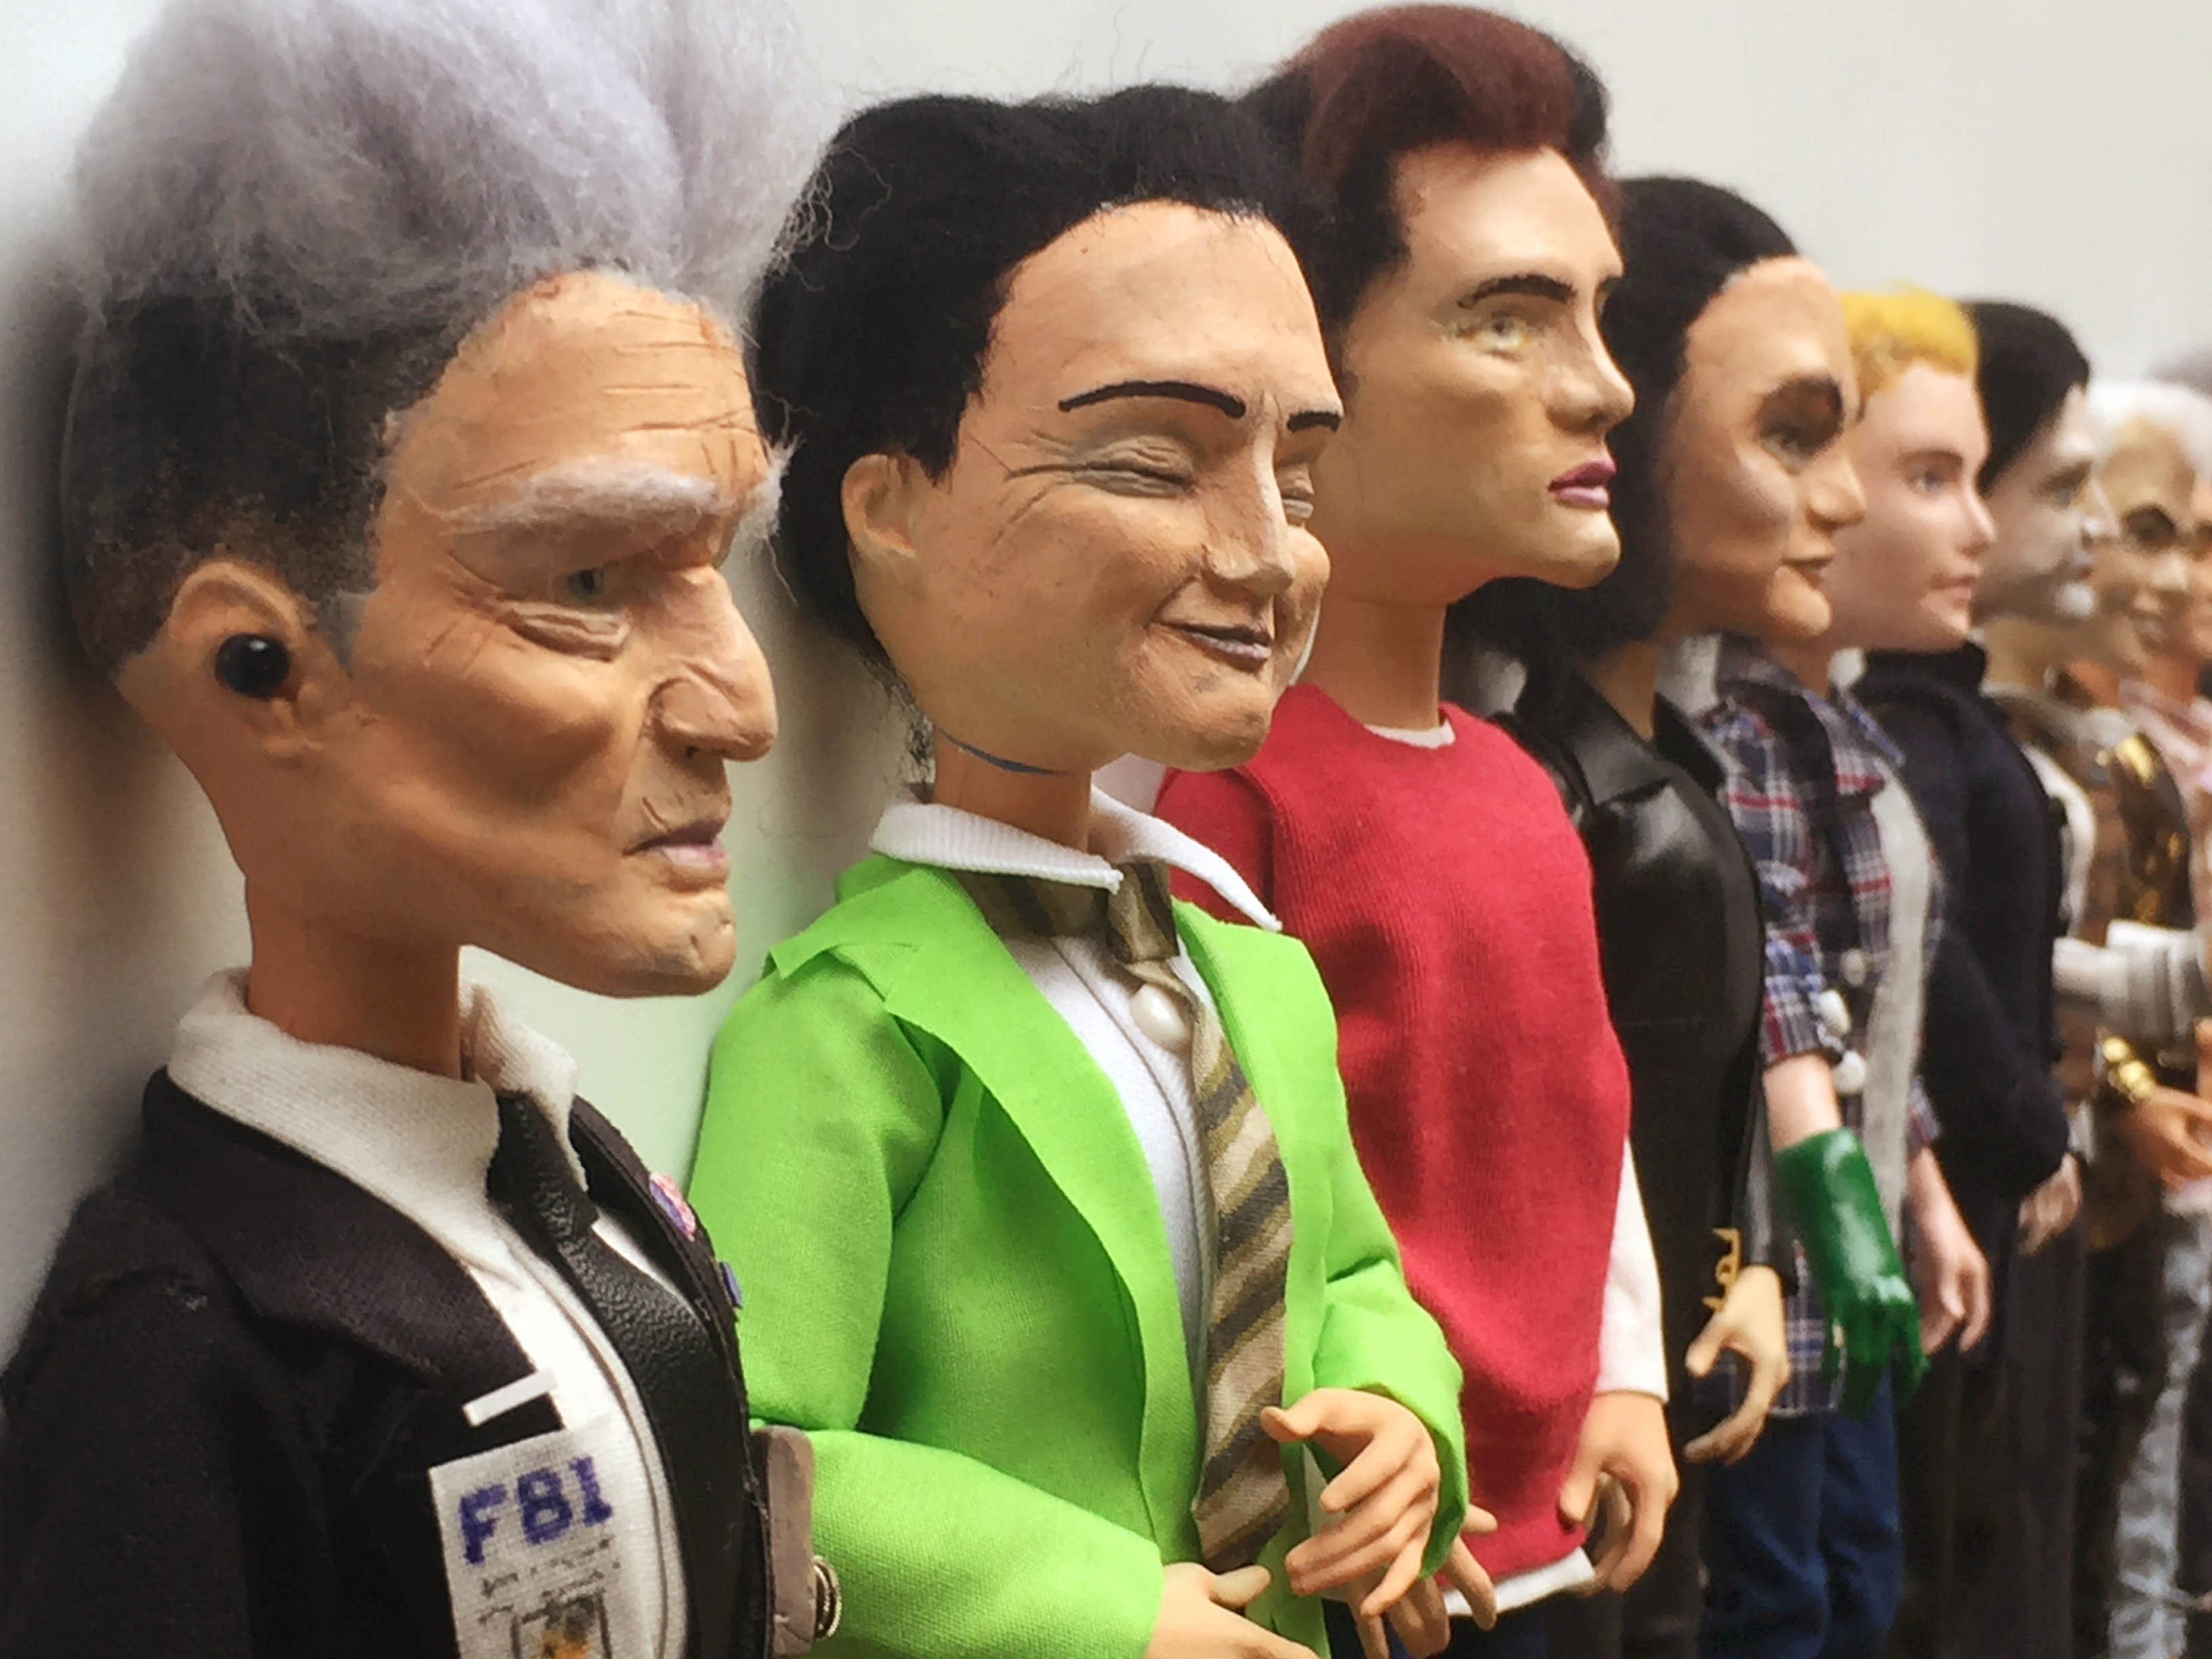 The Men of Lynch dolls lined up